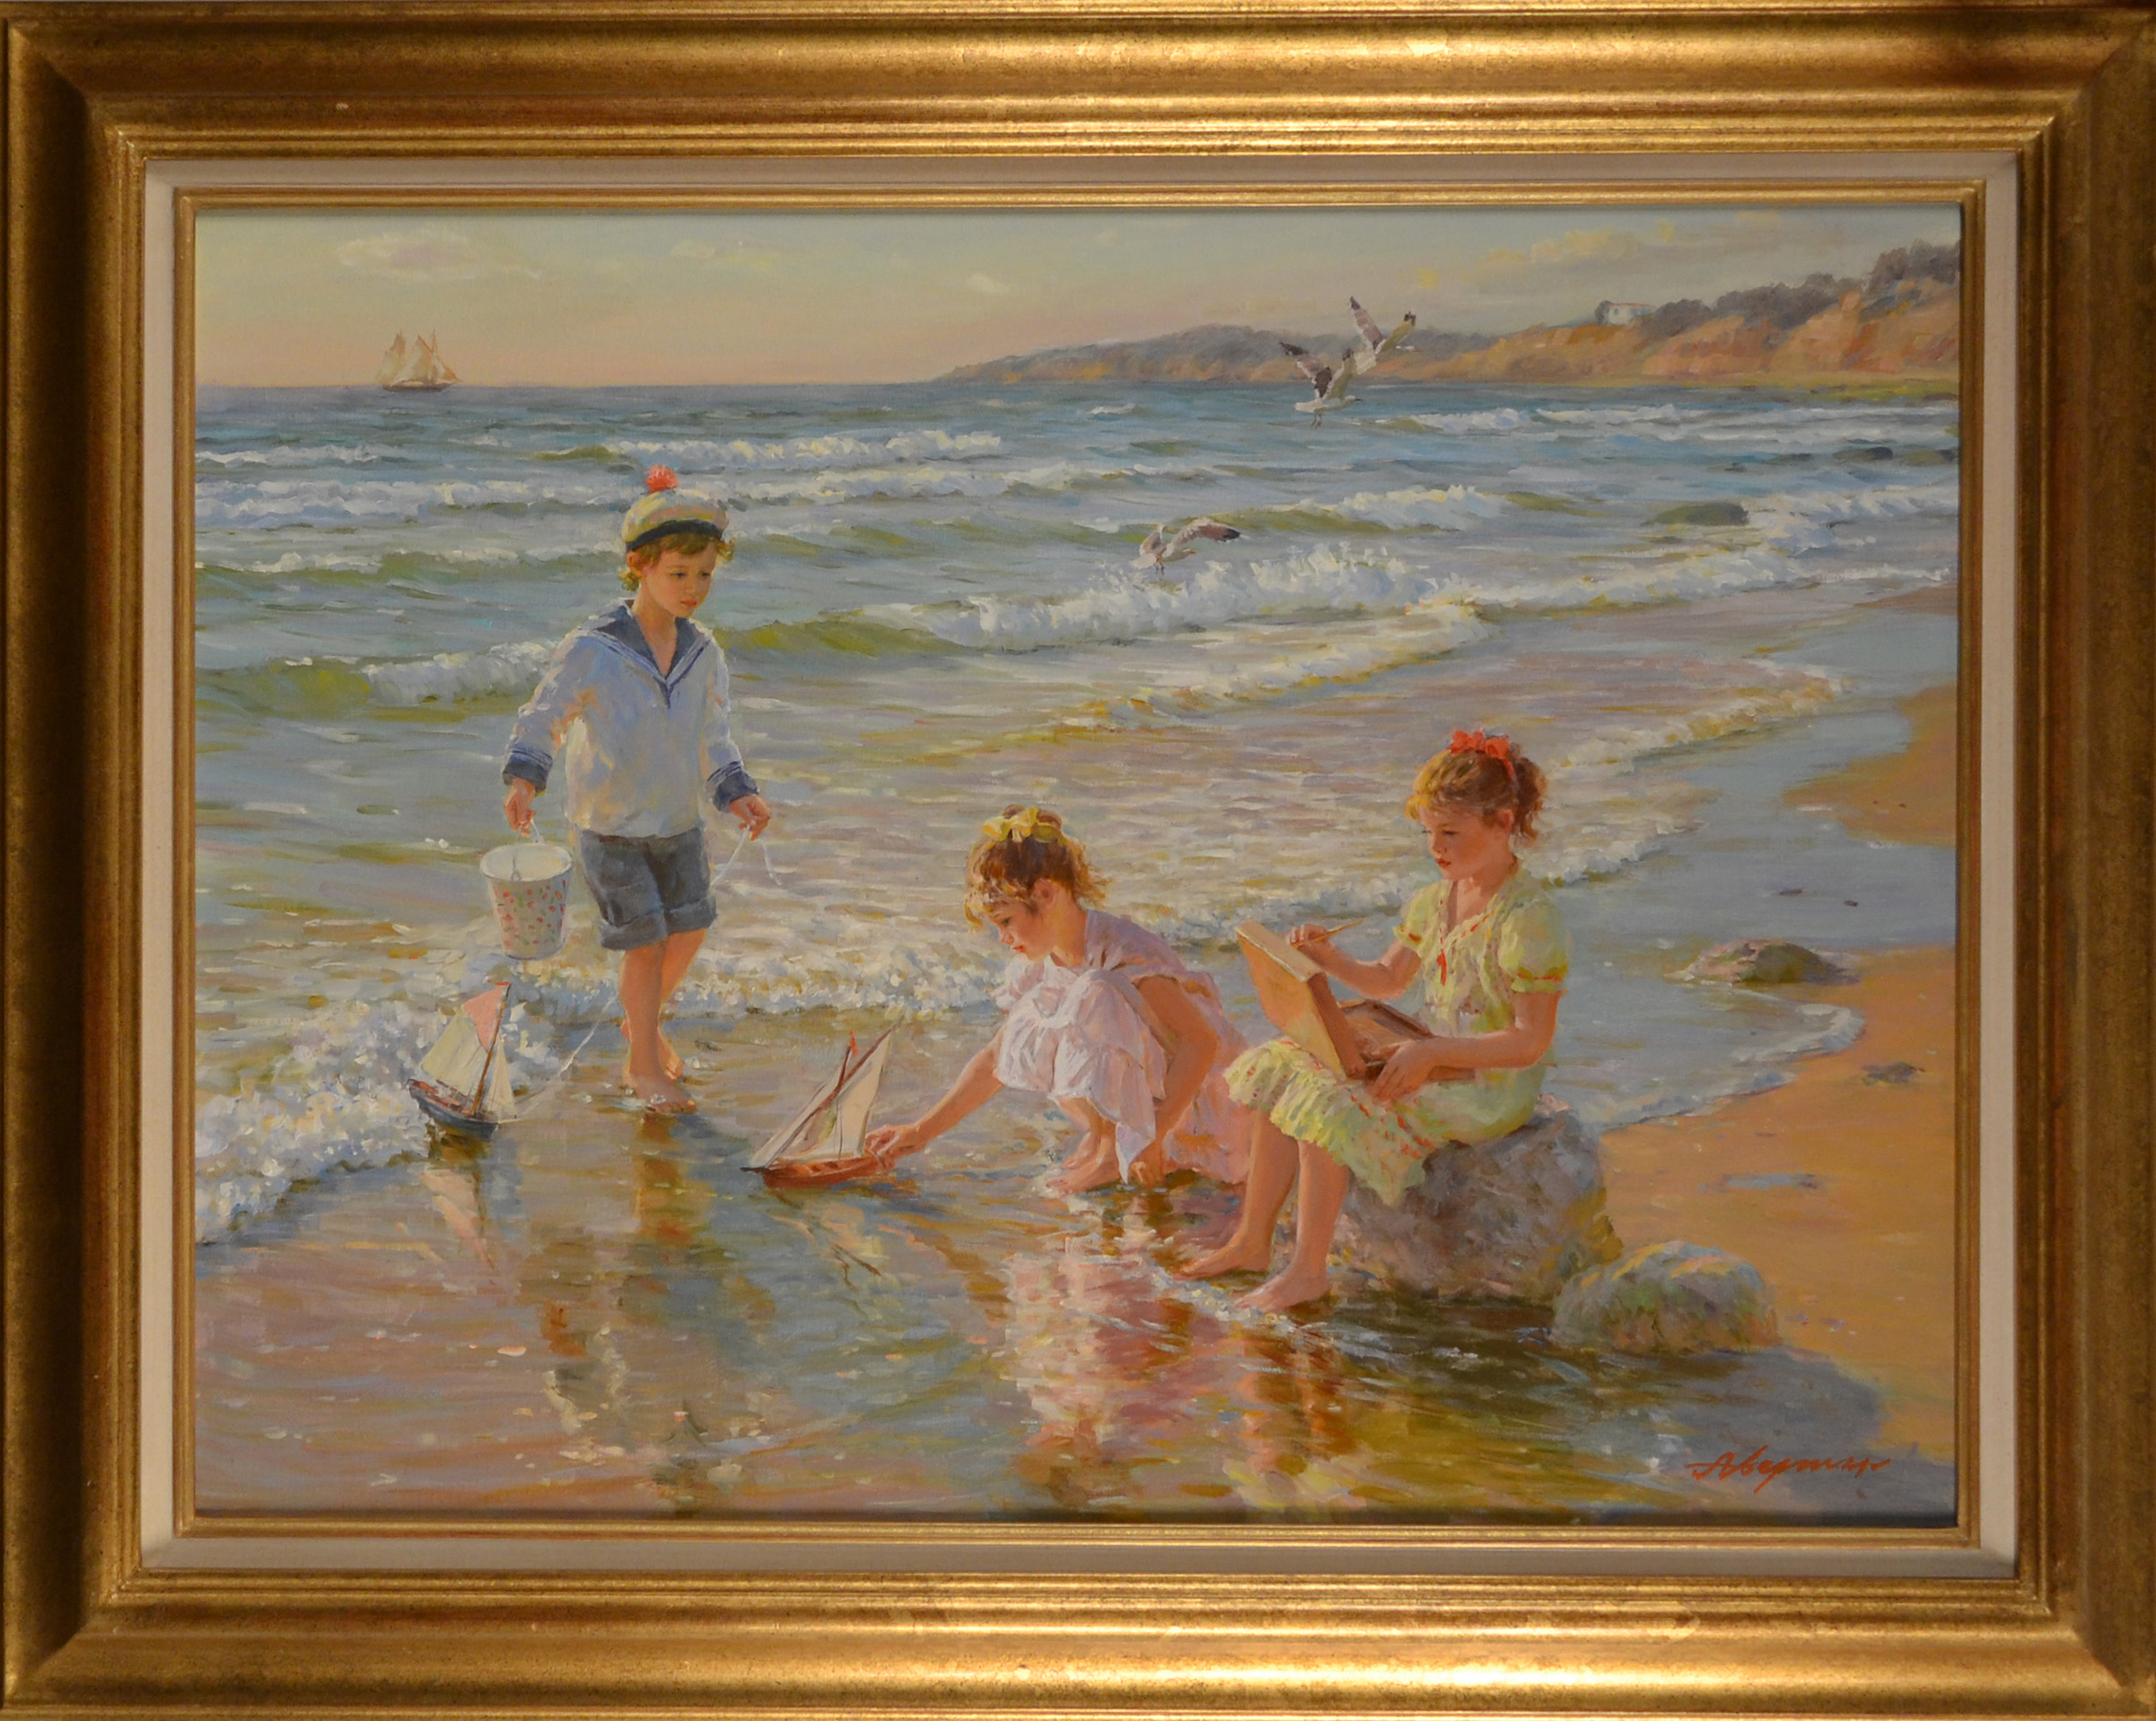 Averin – Children Playing on the beach 1 fr